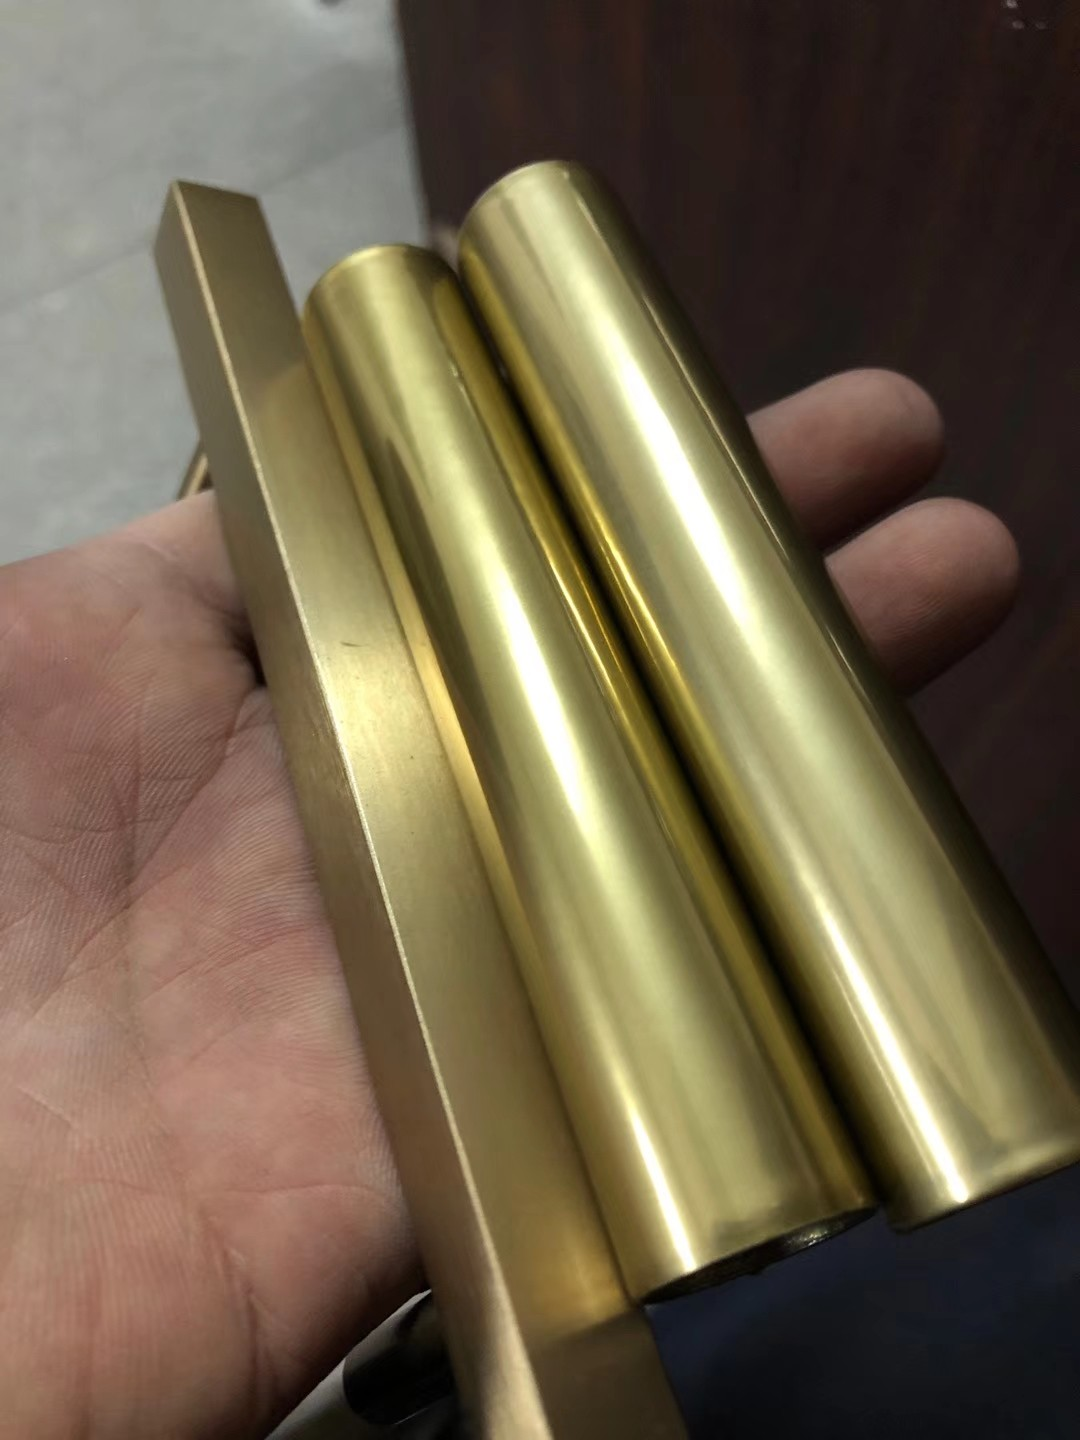 Imitation gold plating